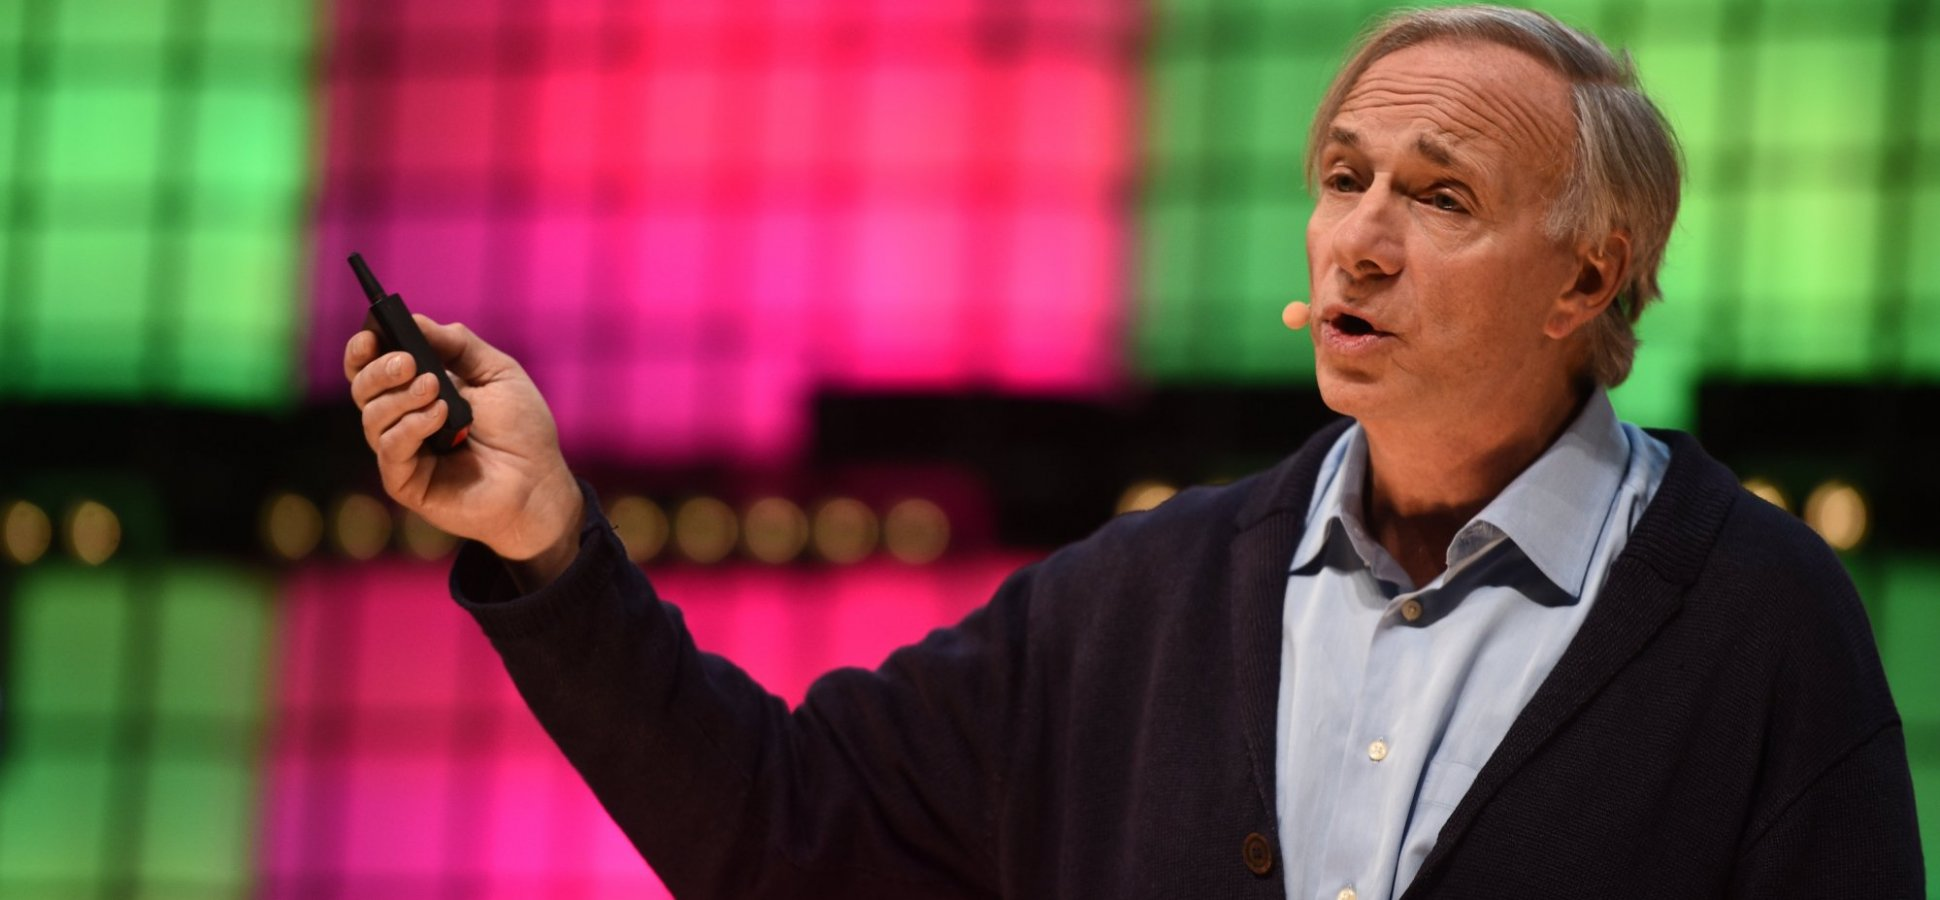 Billionaire Ray Dalio Says to Achieve True Success Decide What You Value Most and Choose a Path to Get There